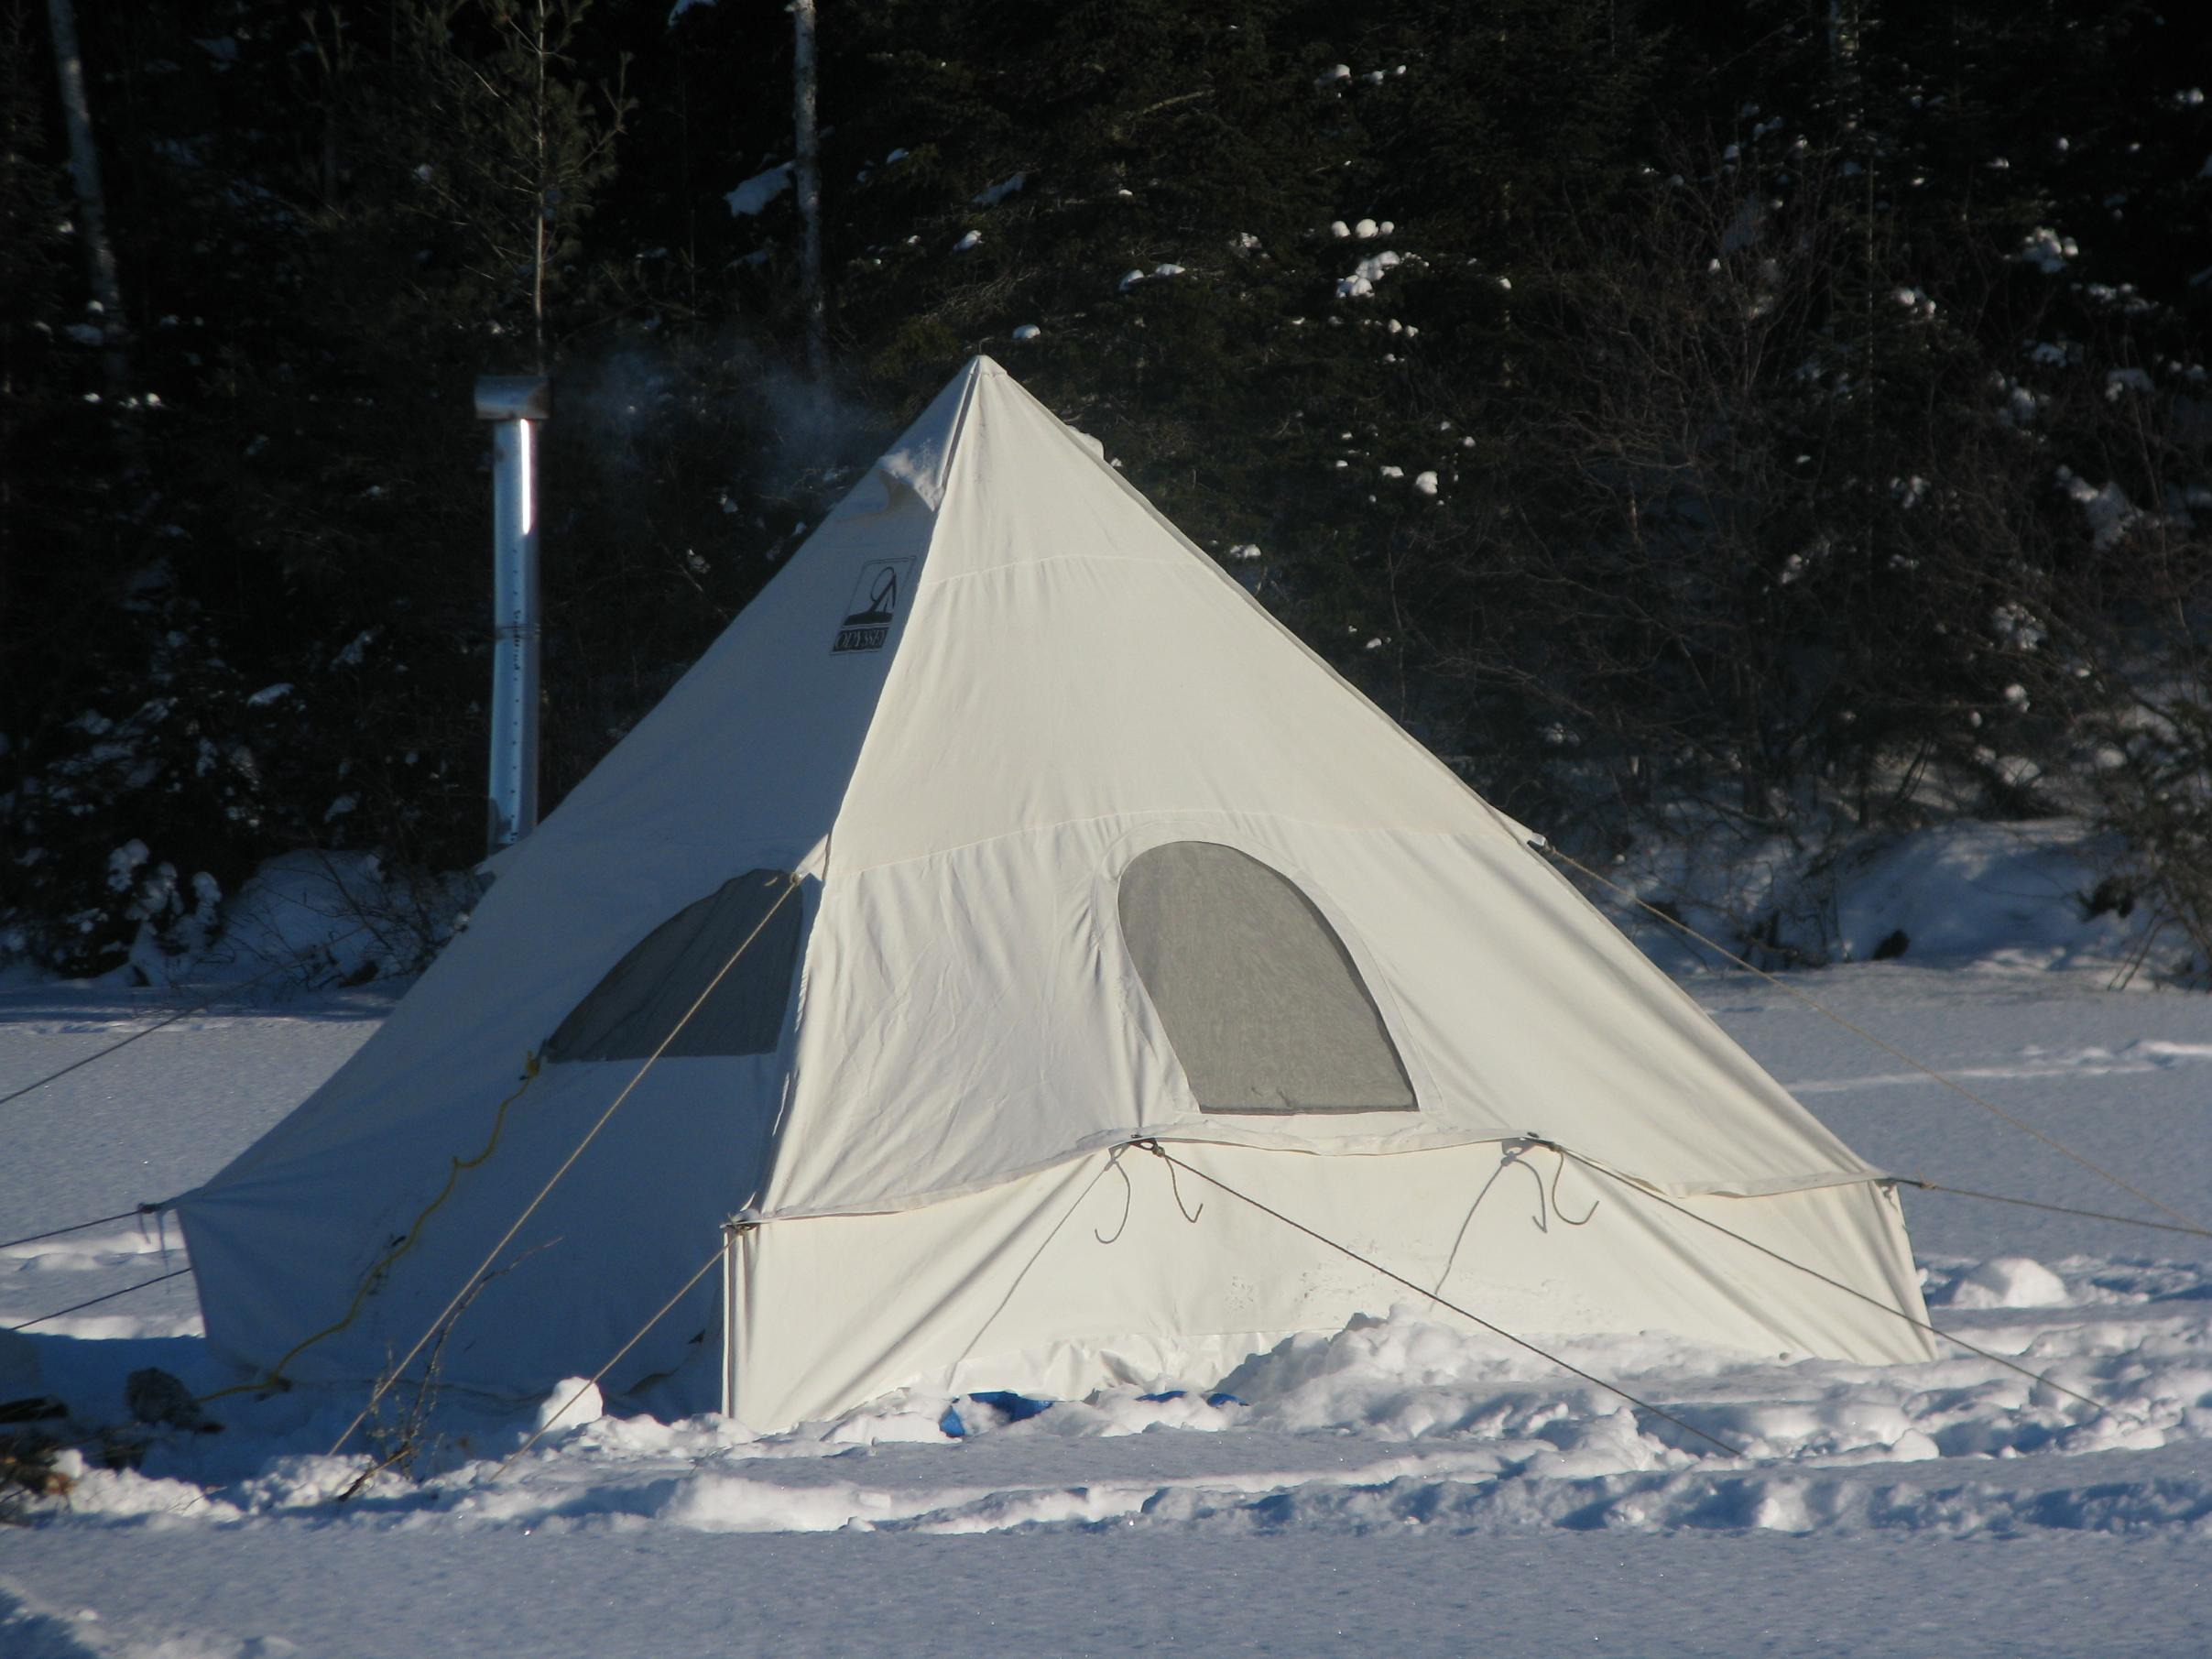 Bwca Tent Ideas And Thoughts Boundary Waters Winter